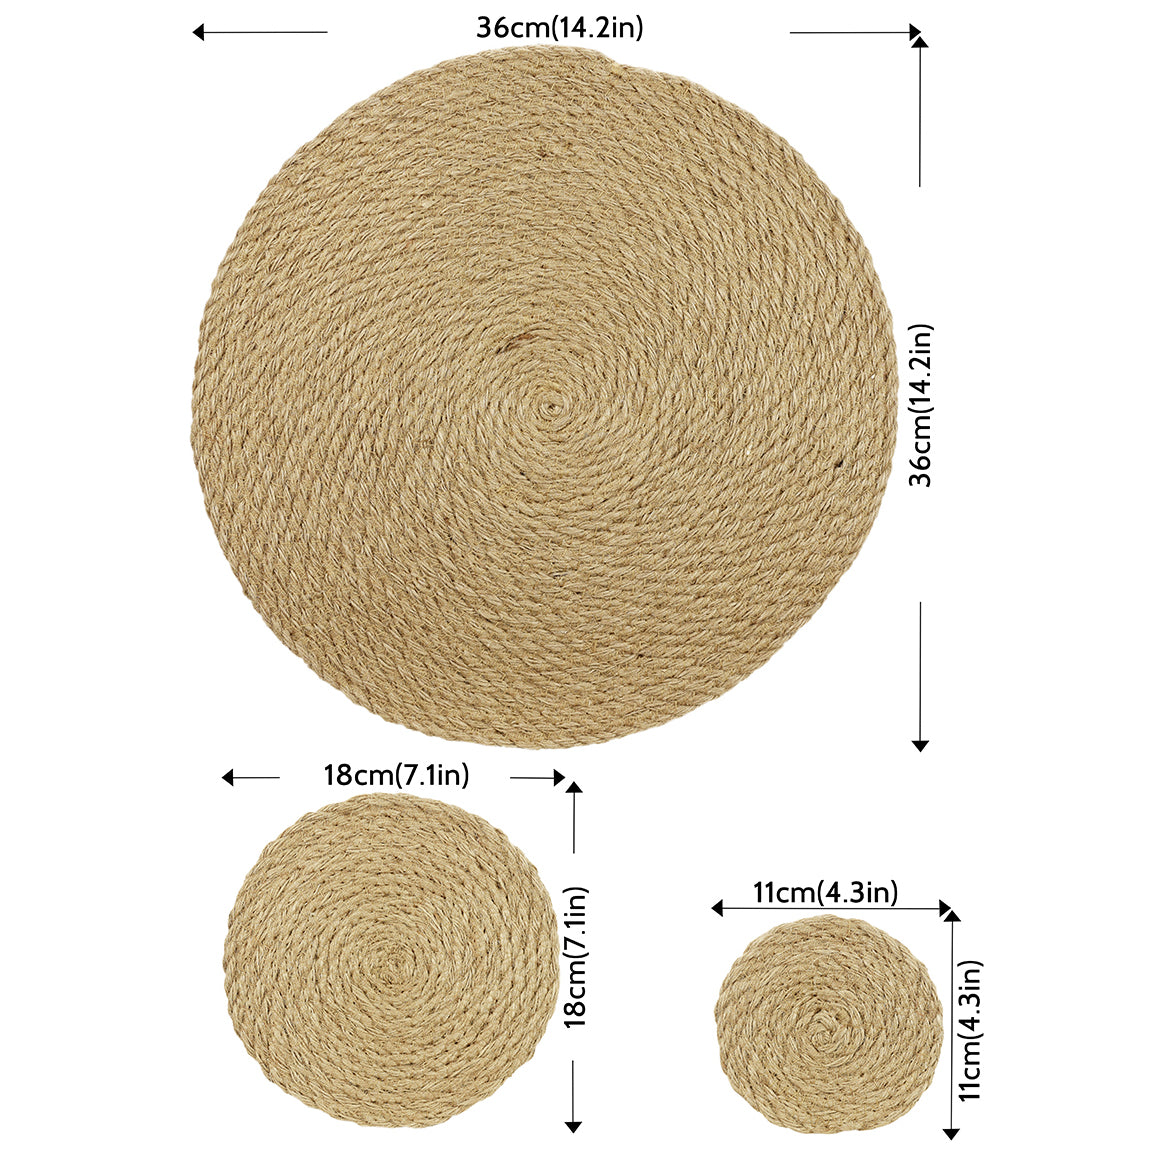 Woven Jute Round Placemat and Coaster Set